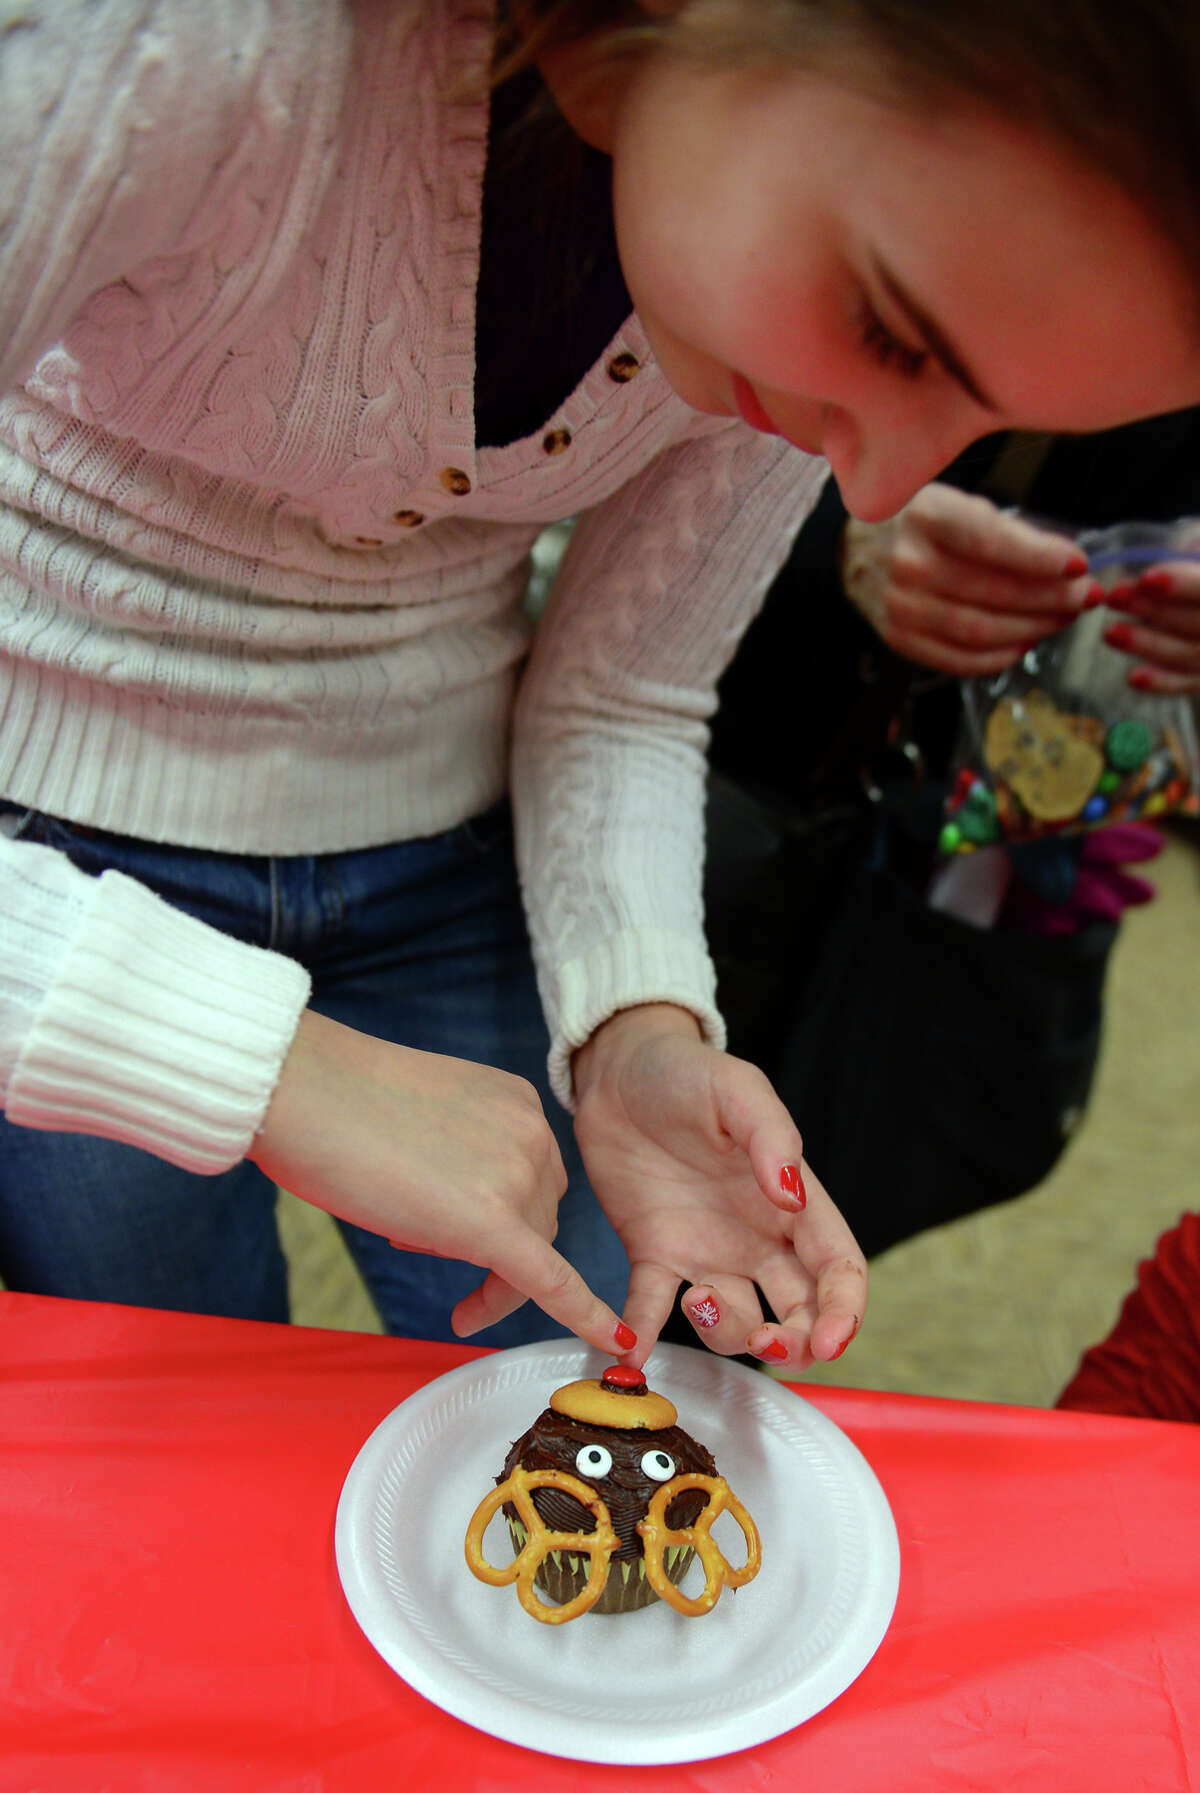 Gabriella Rodia, 12, of Trumbull, puts the finishing touch, a red M&M, on a cupcake she decorated at a First Night Cupcake Party held at the Westport Library, during the First Night New Year's Eve celebration for Westport and Weston in downtown Westport, Conn. on Thursday Dec. 31, 2014.